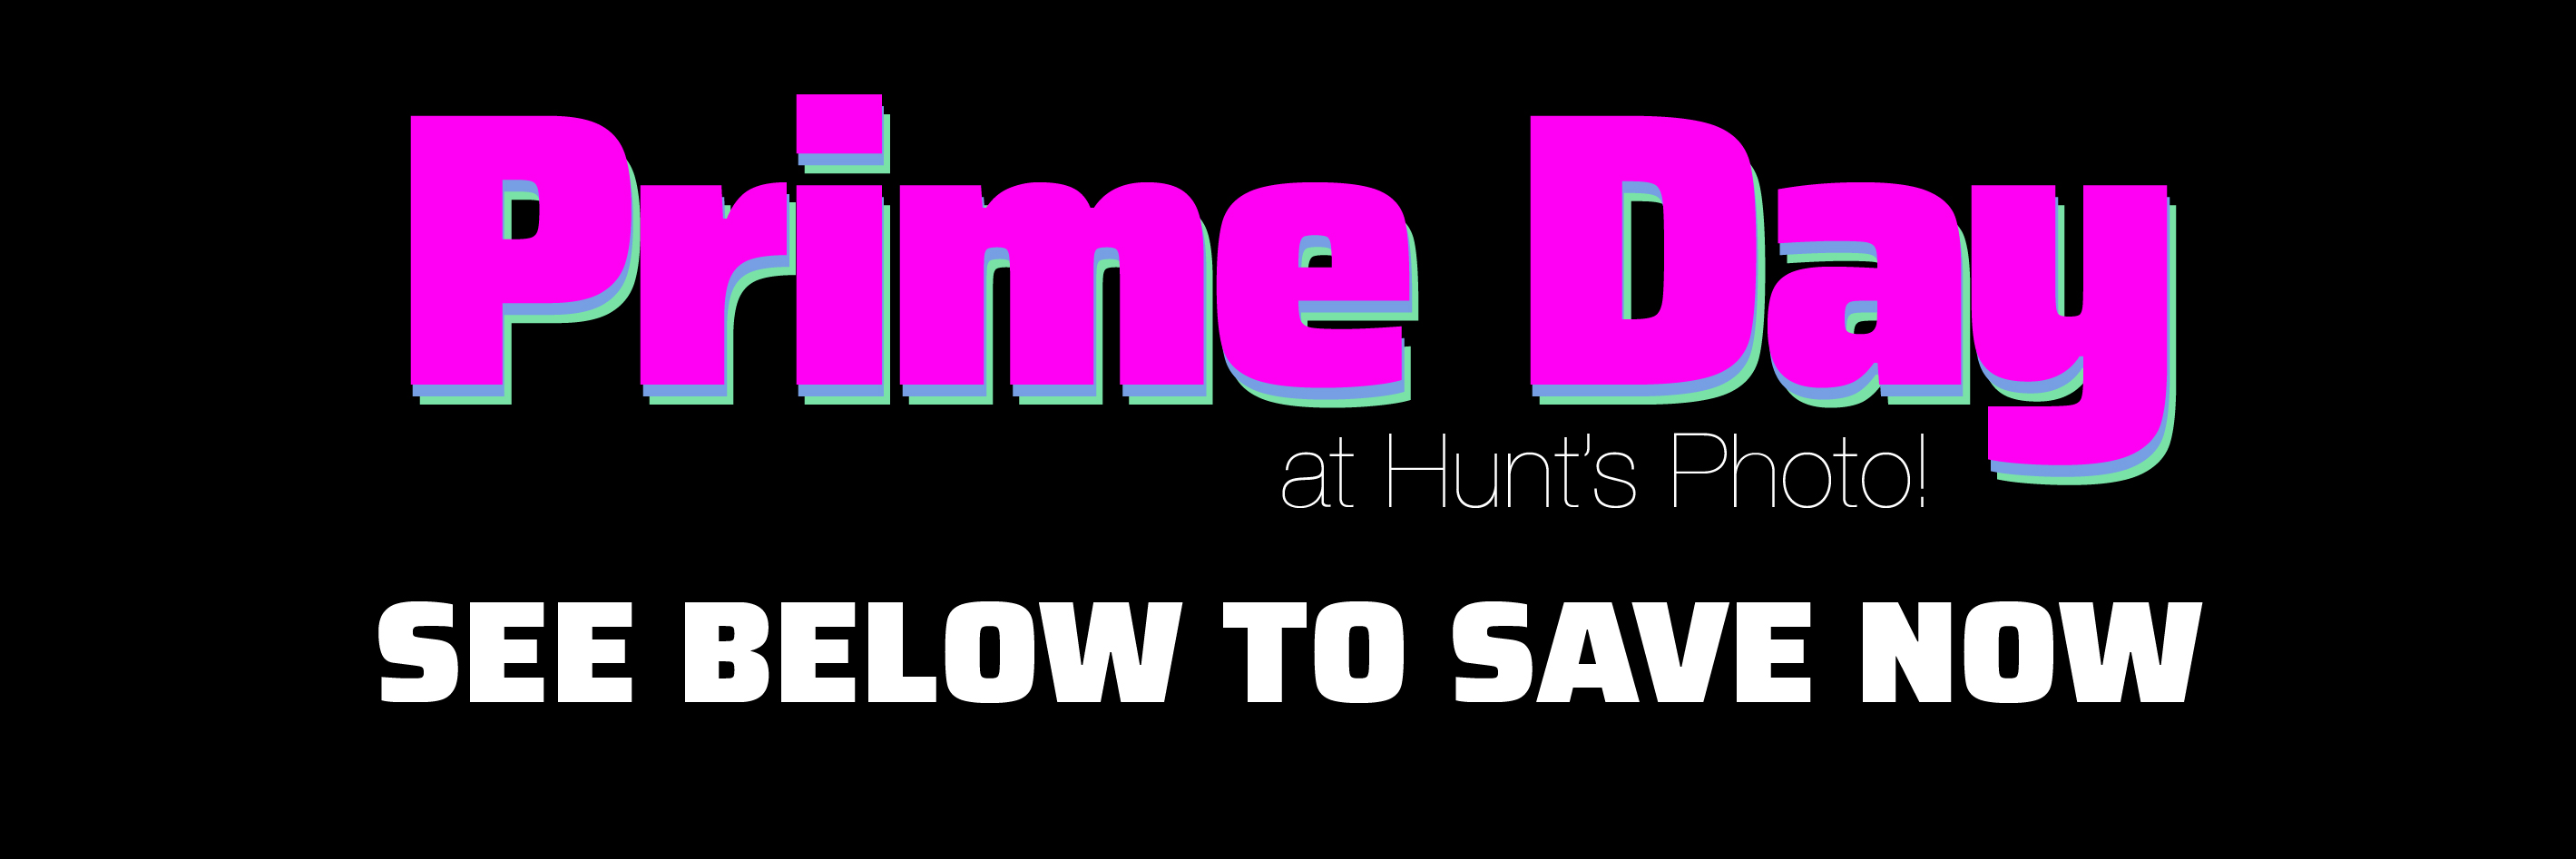 Prime Day Specials at Hunt's Photo